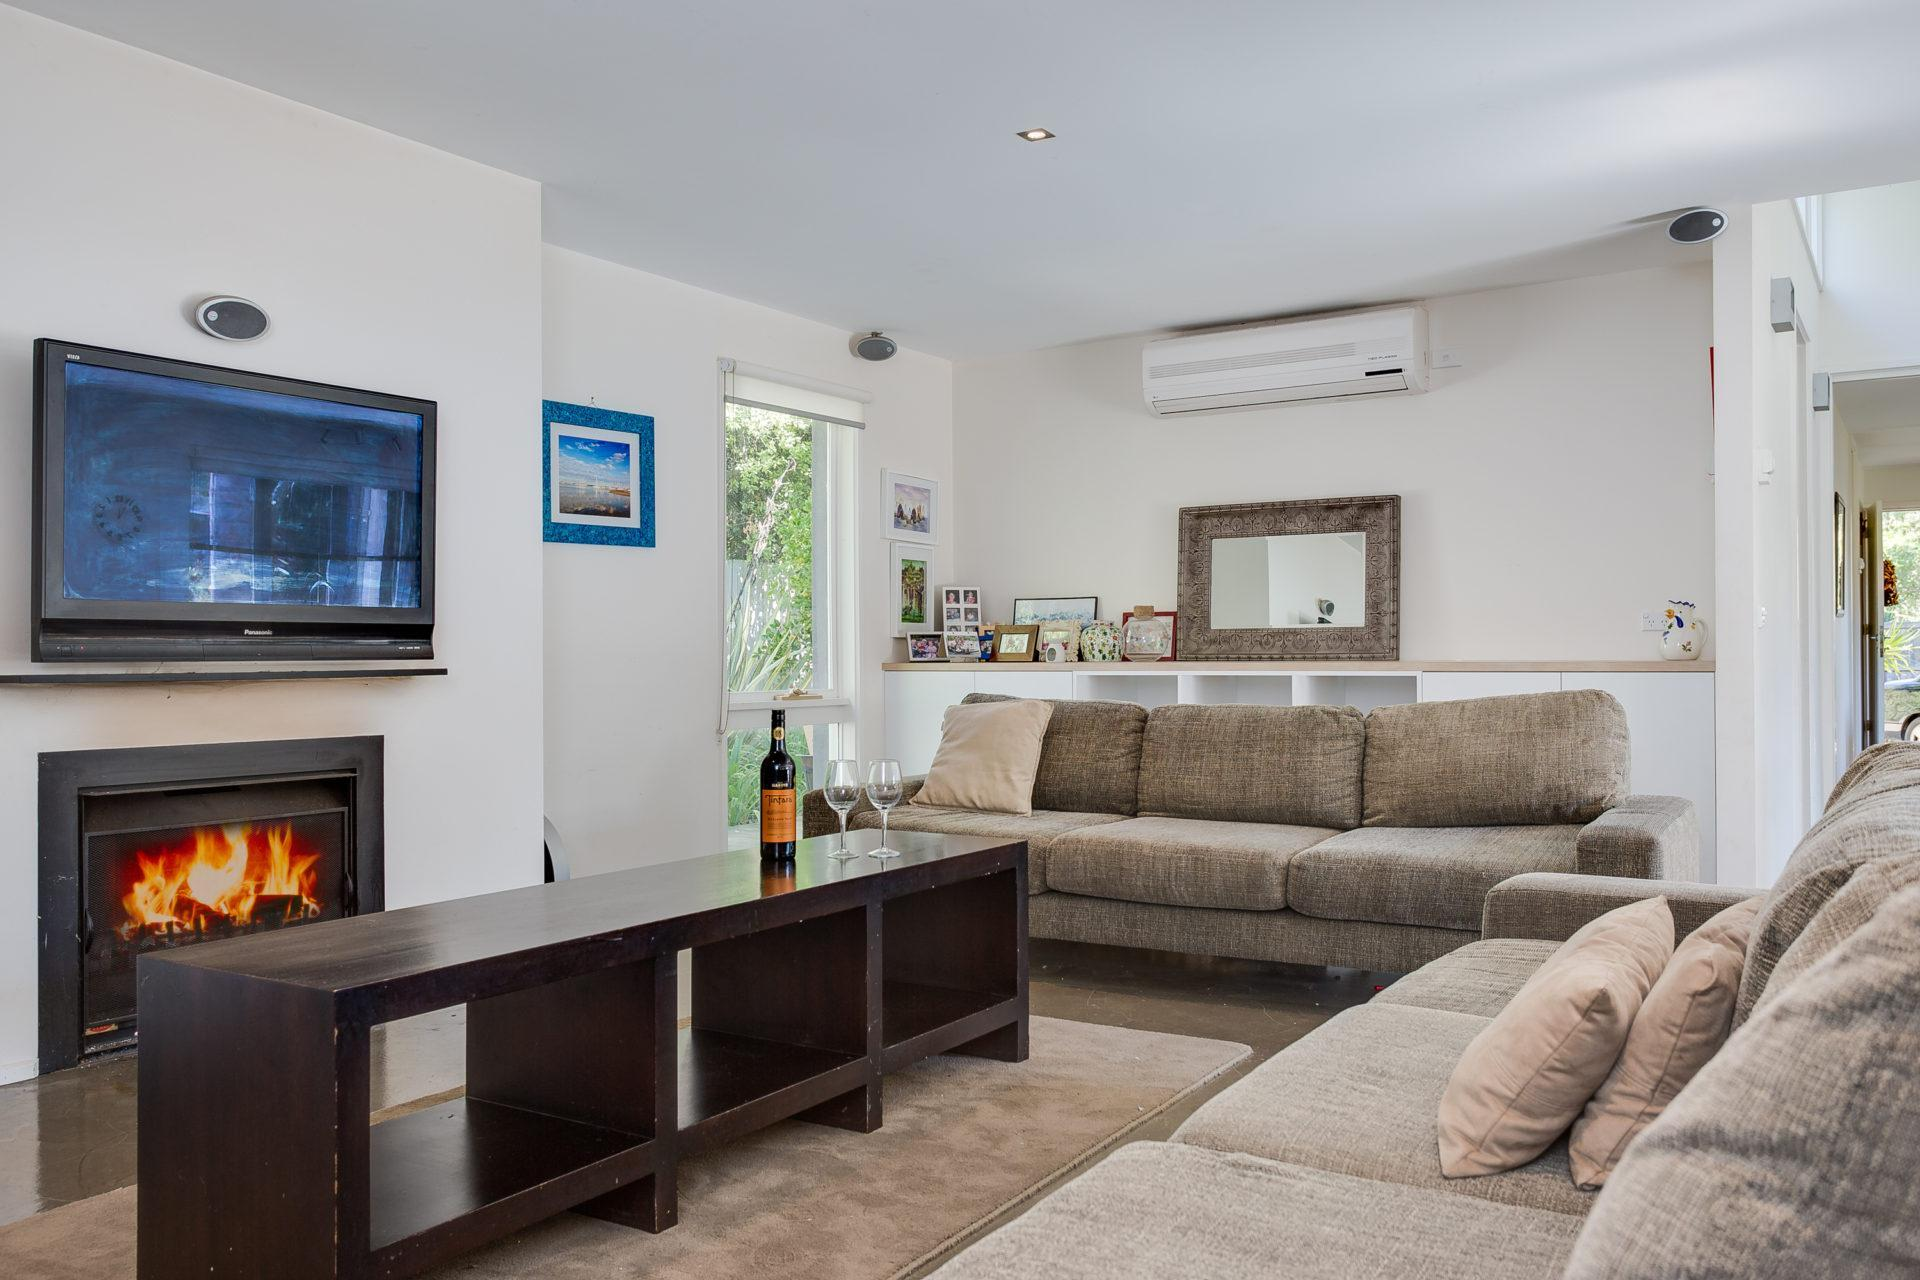 5 Bedrooms House Portsea Place